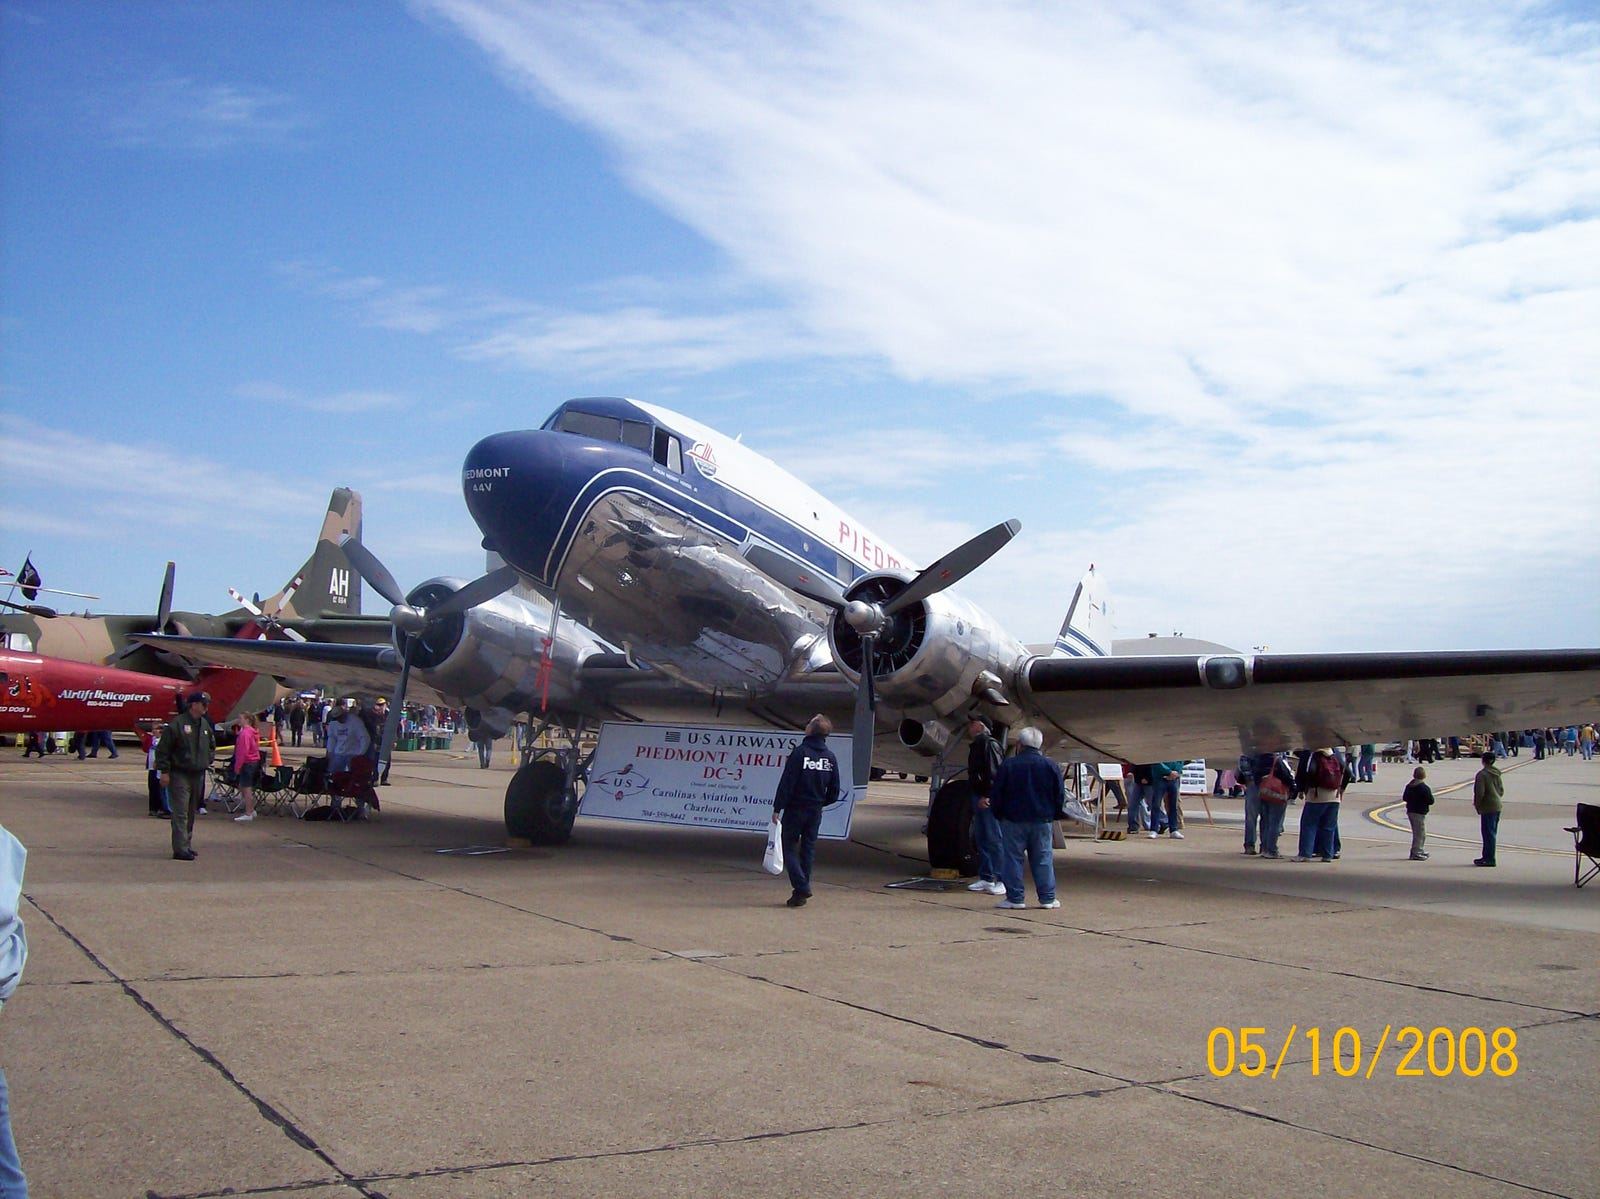 Piedmont Airlines stared in 1948 with DC-3s, and merged into USAir (later US Airways) in 1989